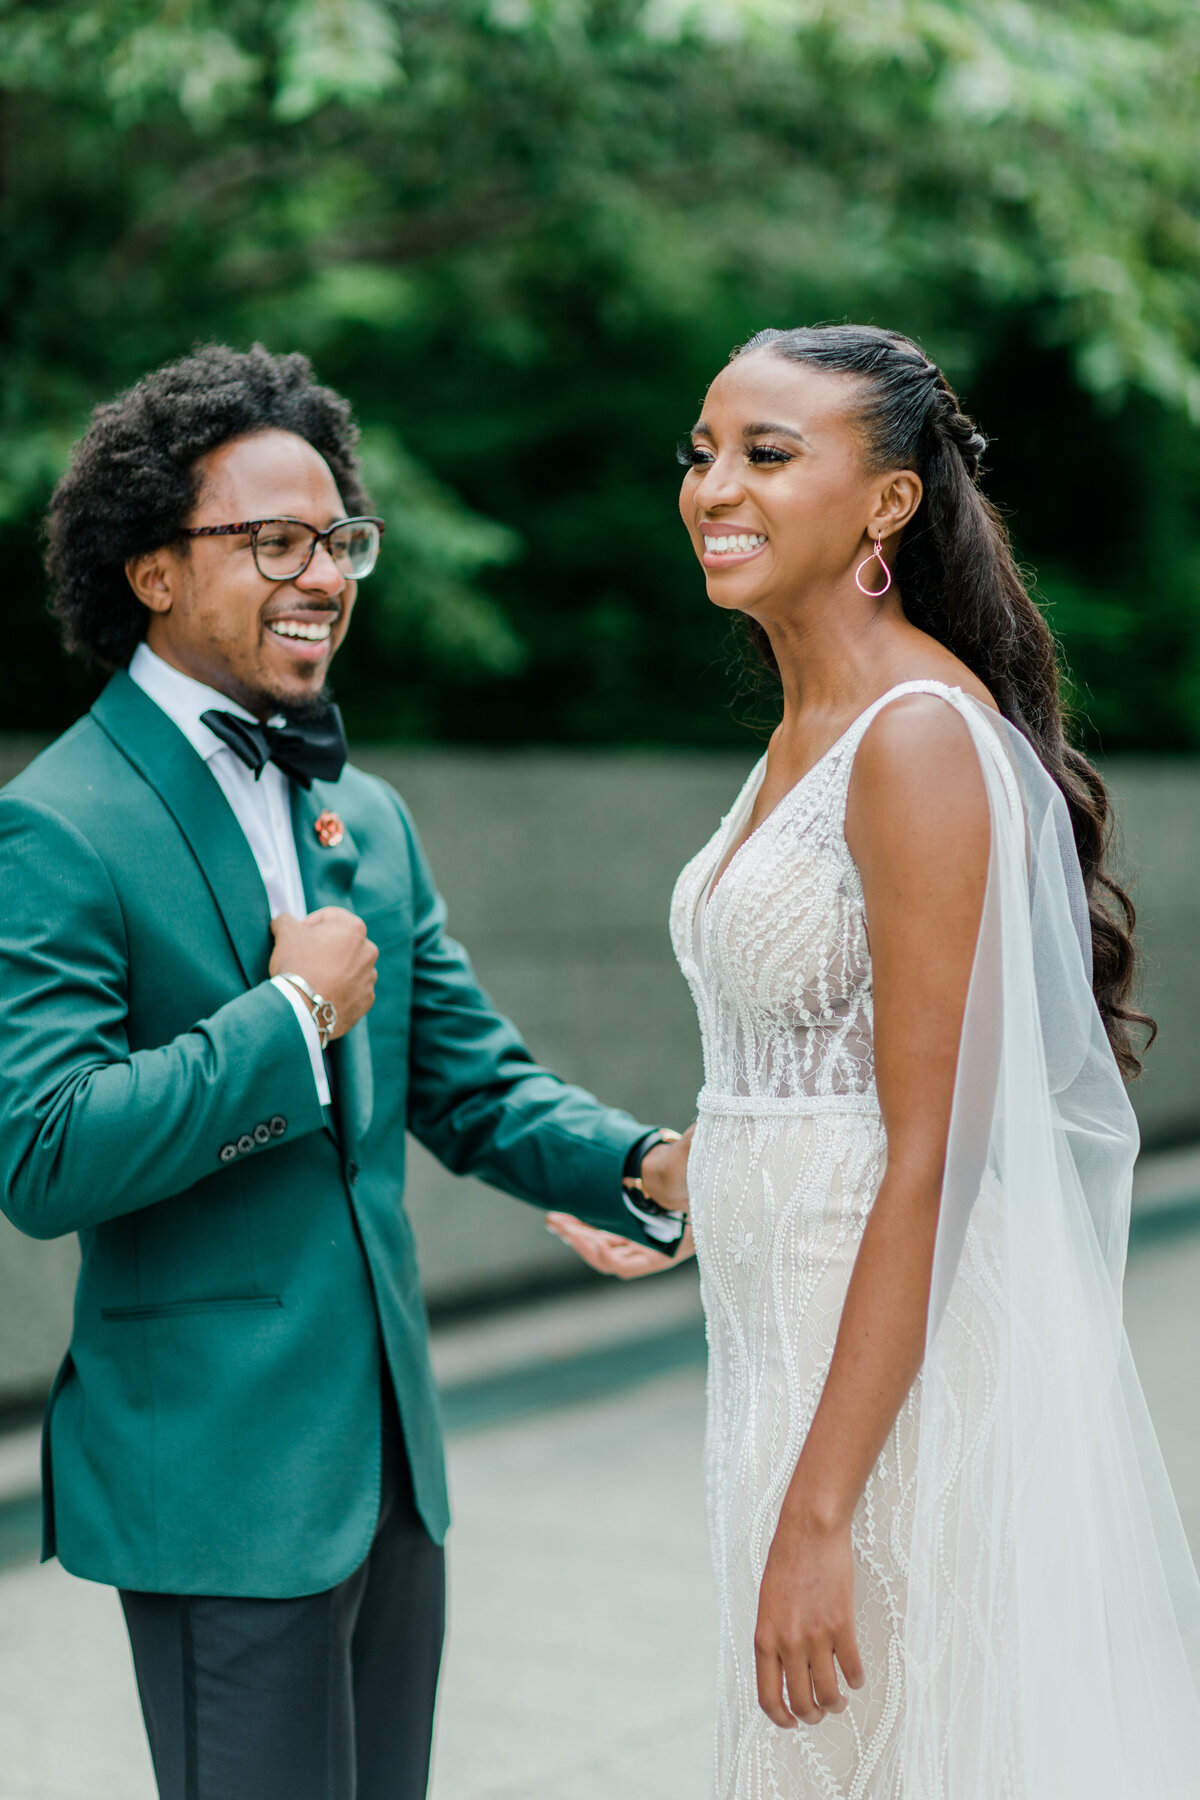 Solomon_Tkeyah_Micro_COVID_Wedding_Washington_DC_War_Memorial_MLK_Memorial_Linoln_Memorial_Angelika_Johns_Photography-3737